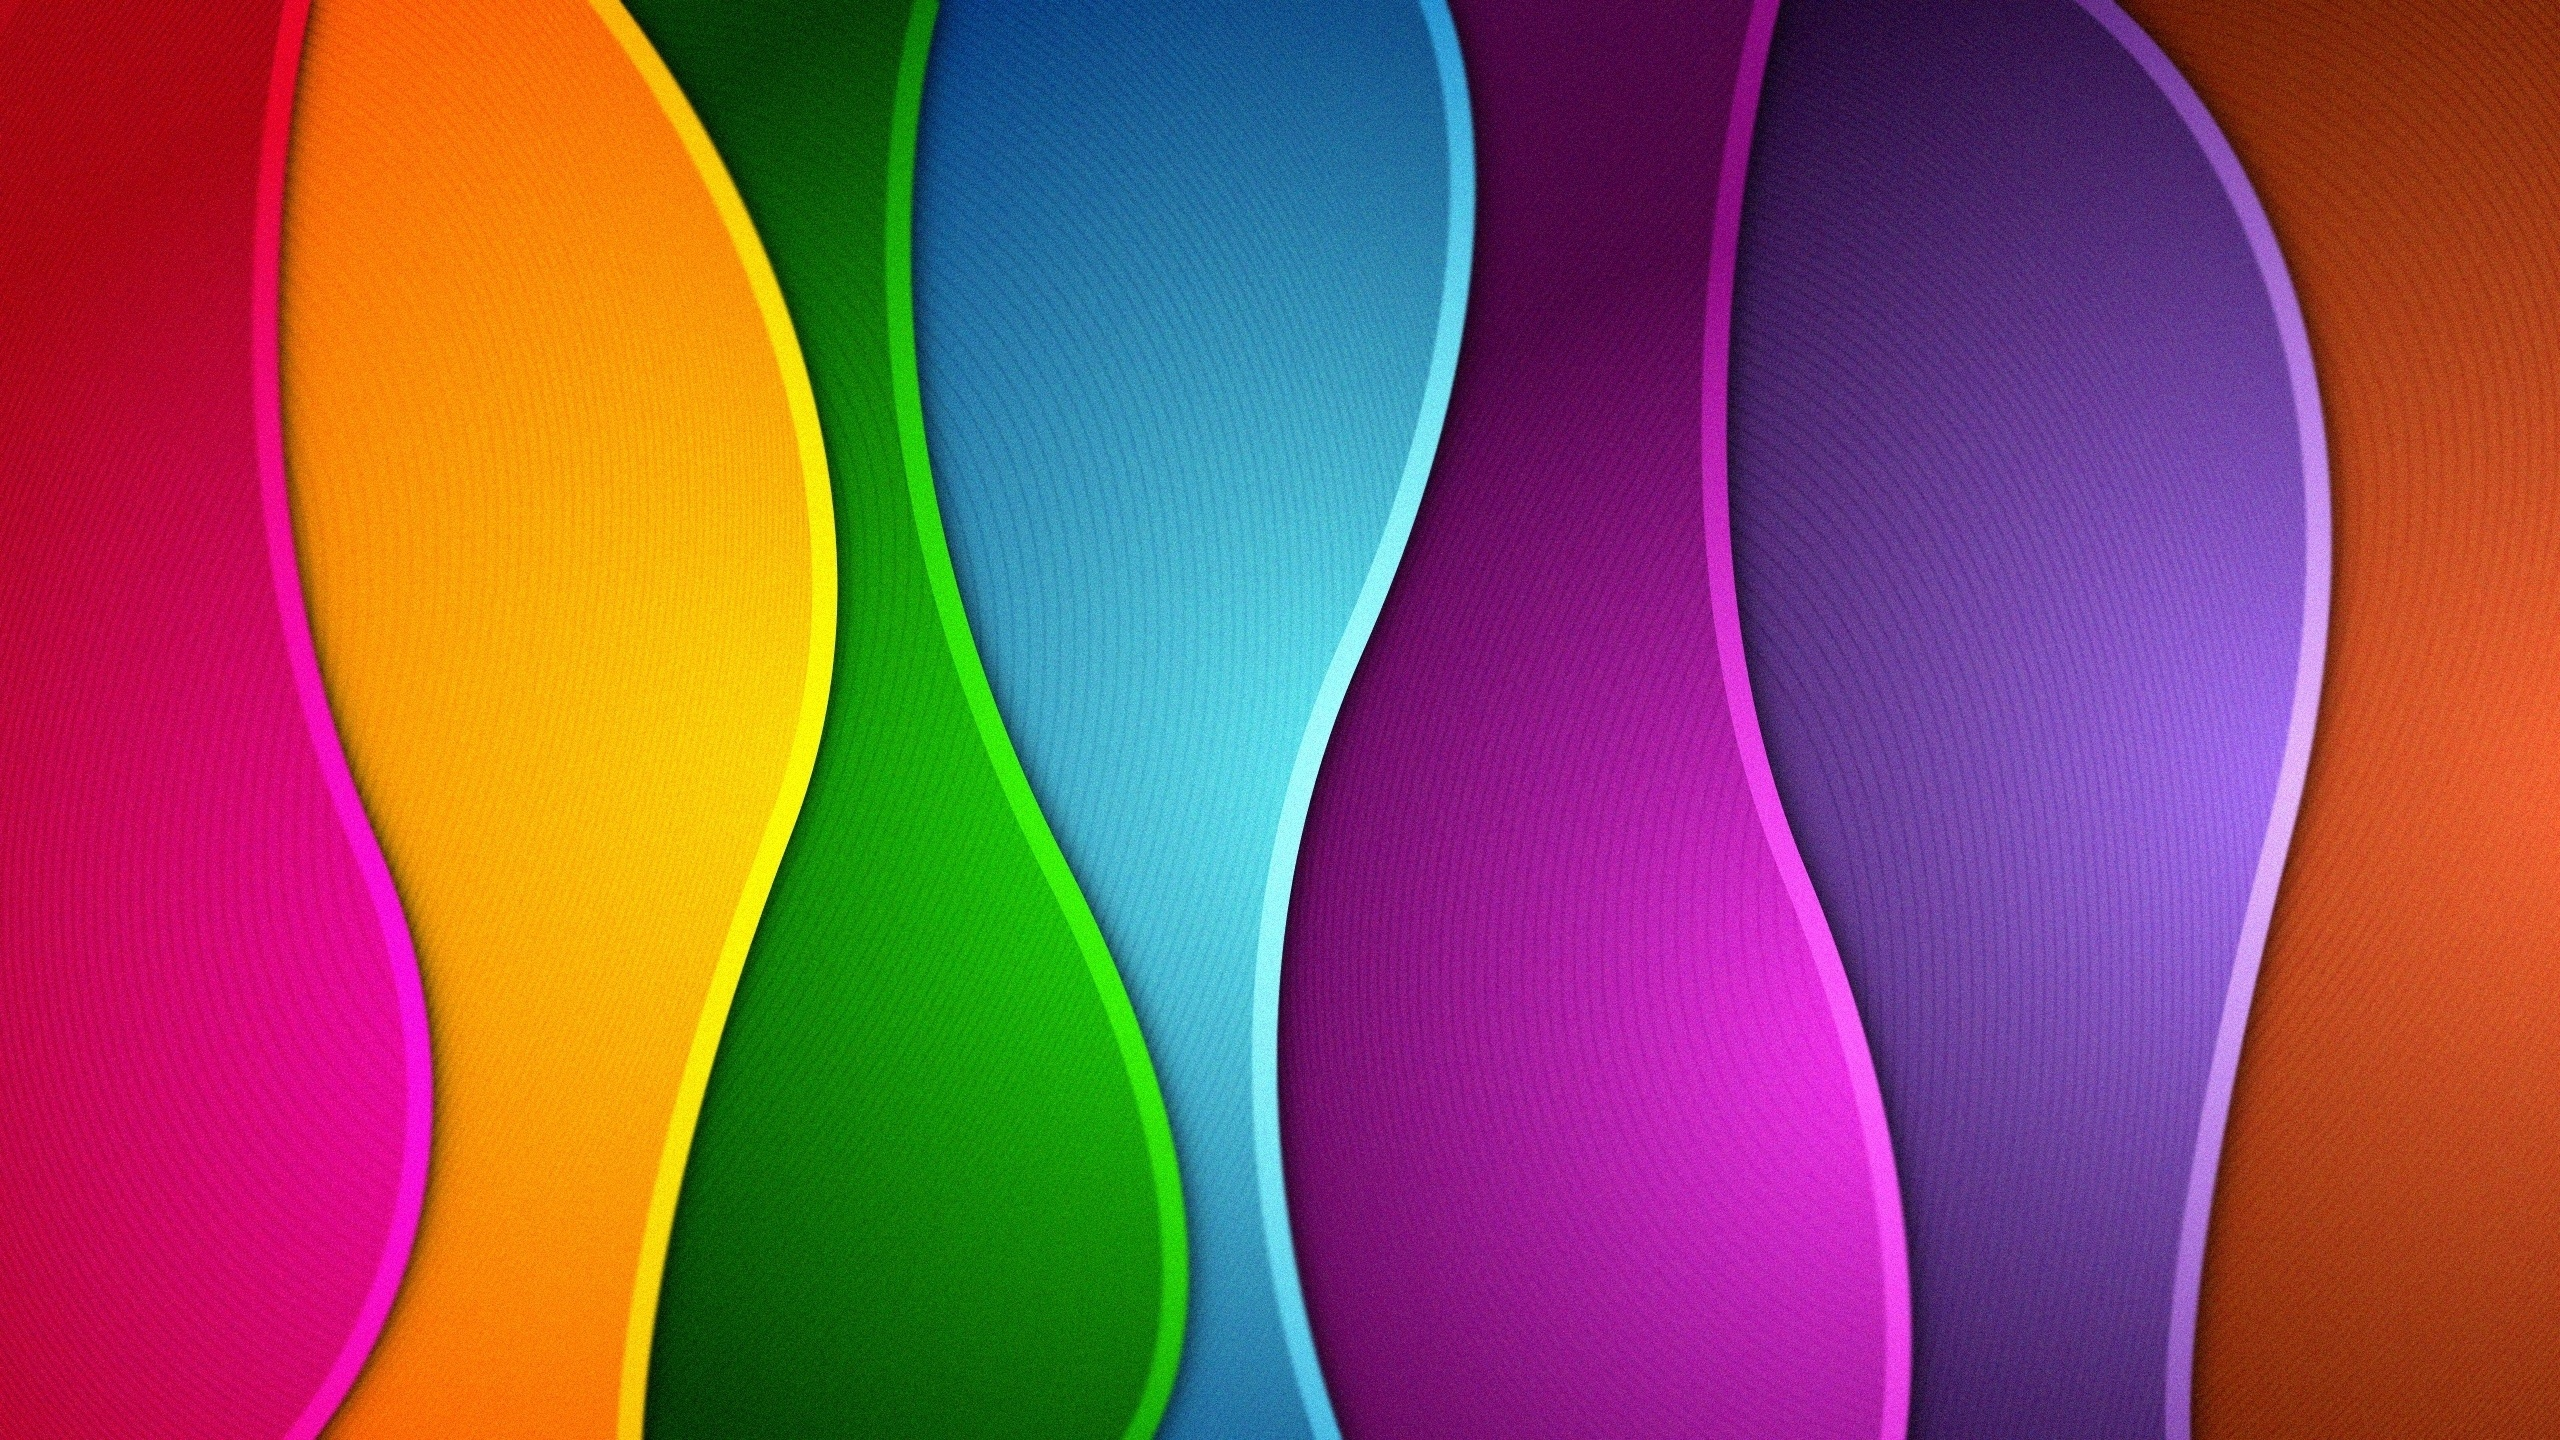 Colors Hd Wallpaper: Colors Wallpapers, Pictures, Images